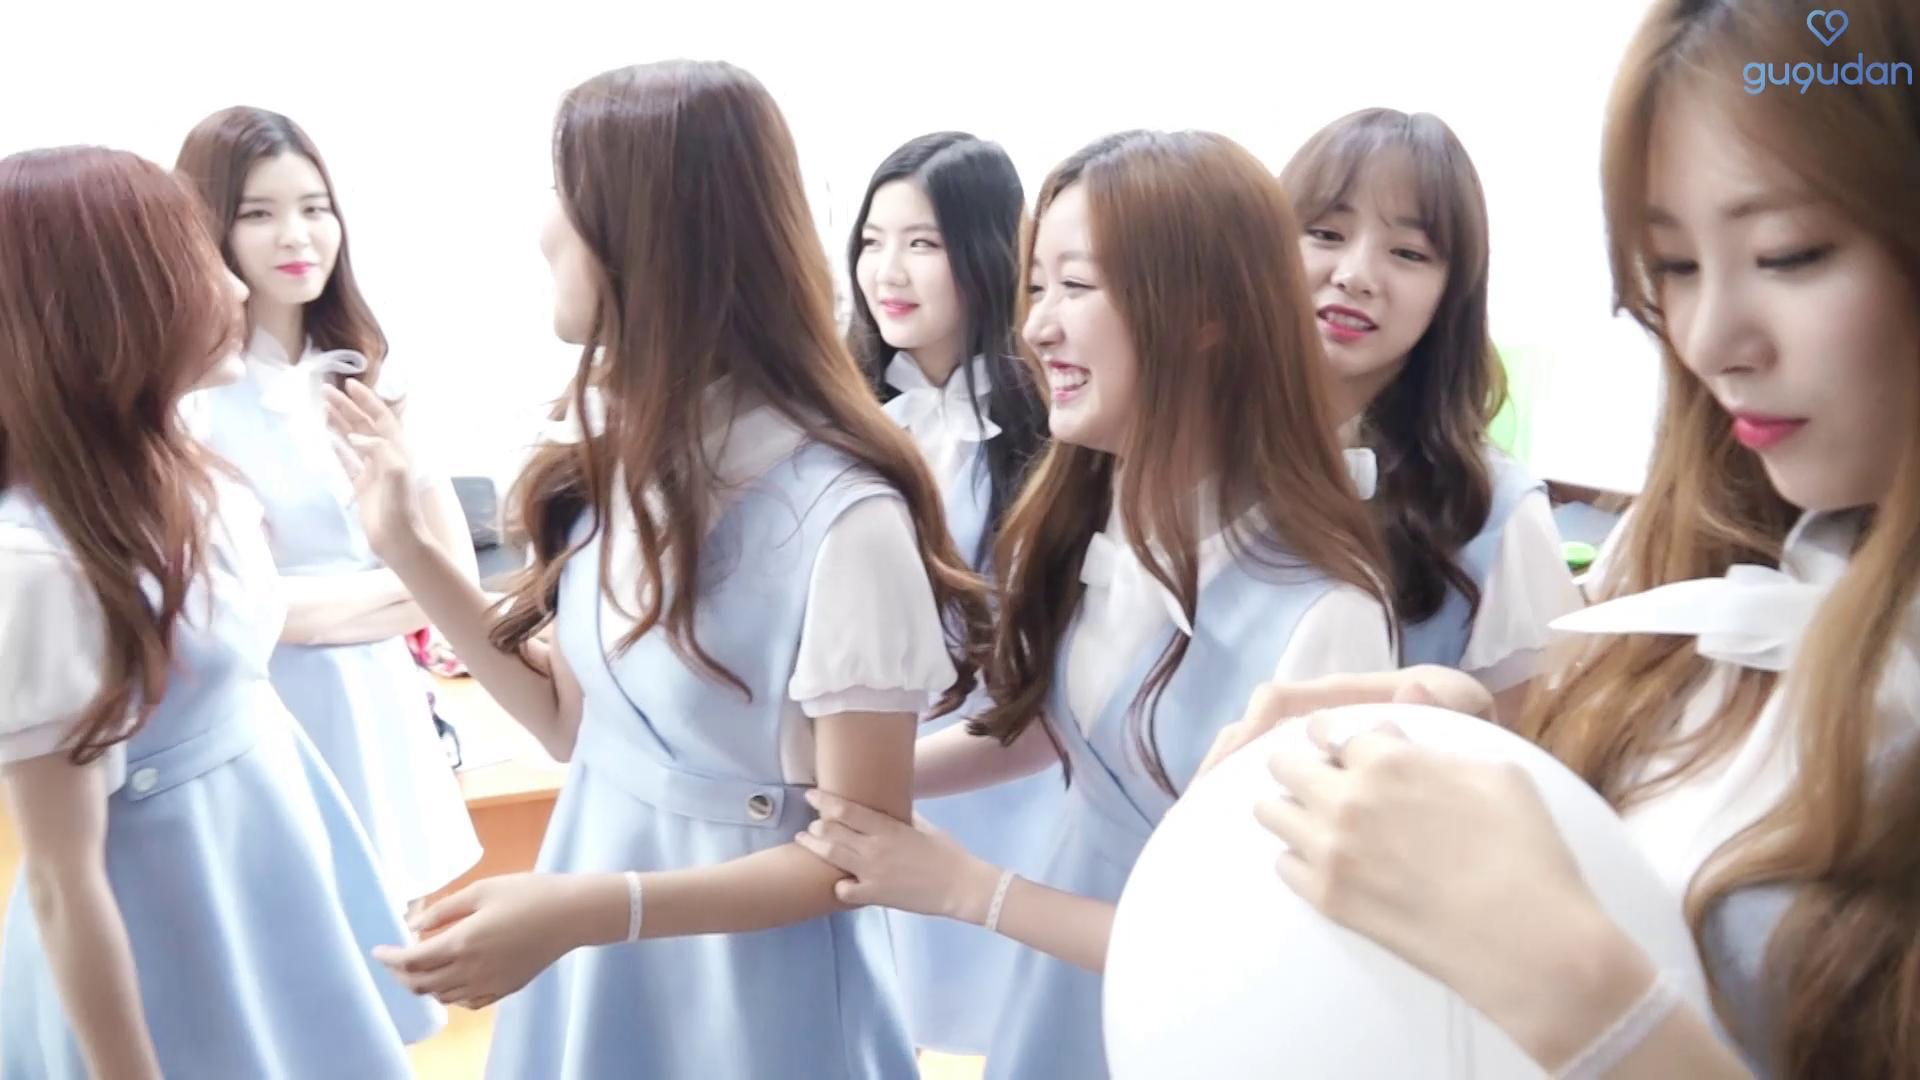 gugudan(구구단) - gugudan's fun playing with balloon